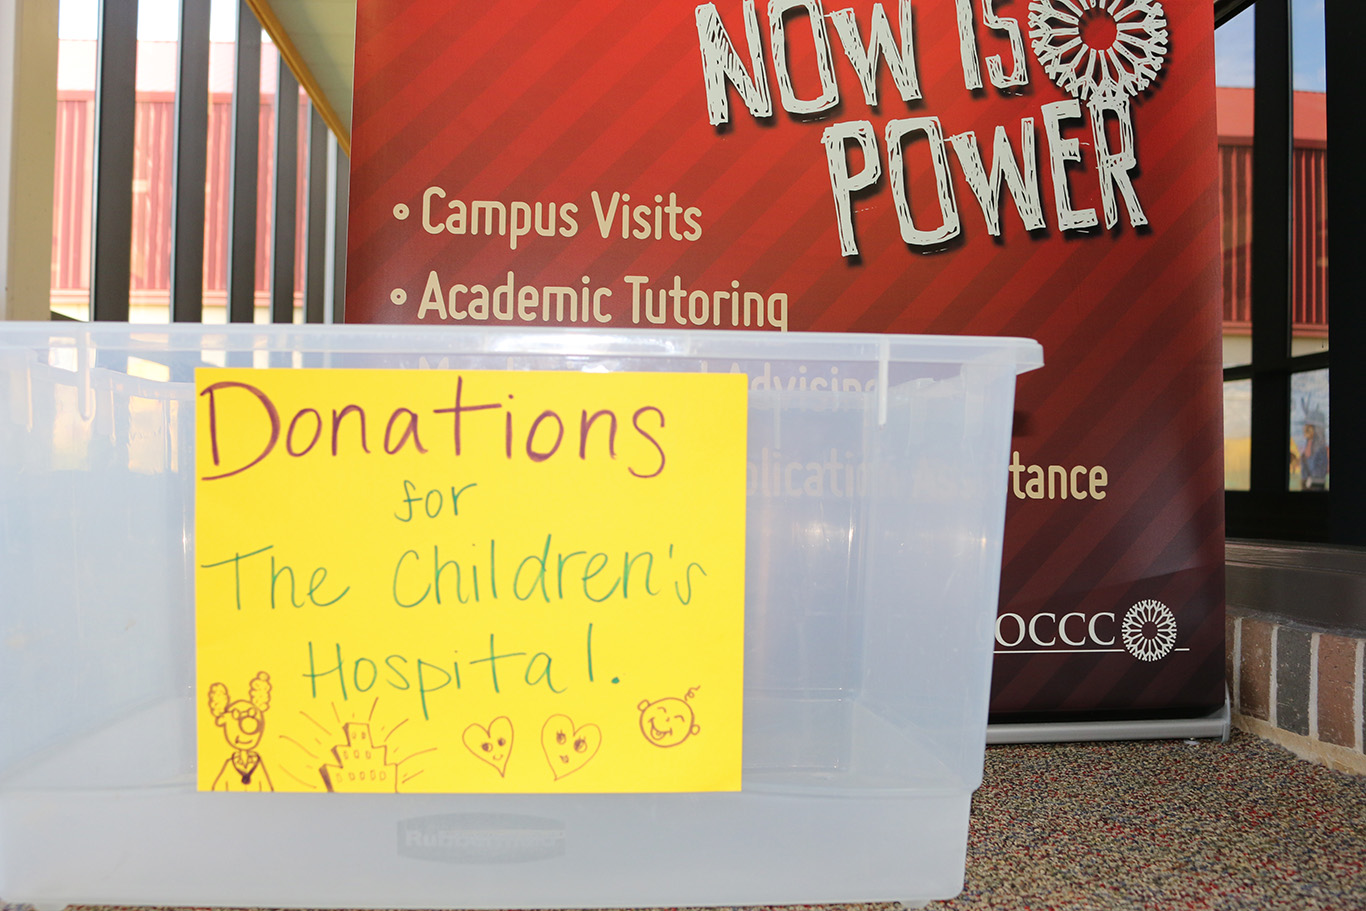 TRIO accepting toys, books and other items to donate to Children's Hospital